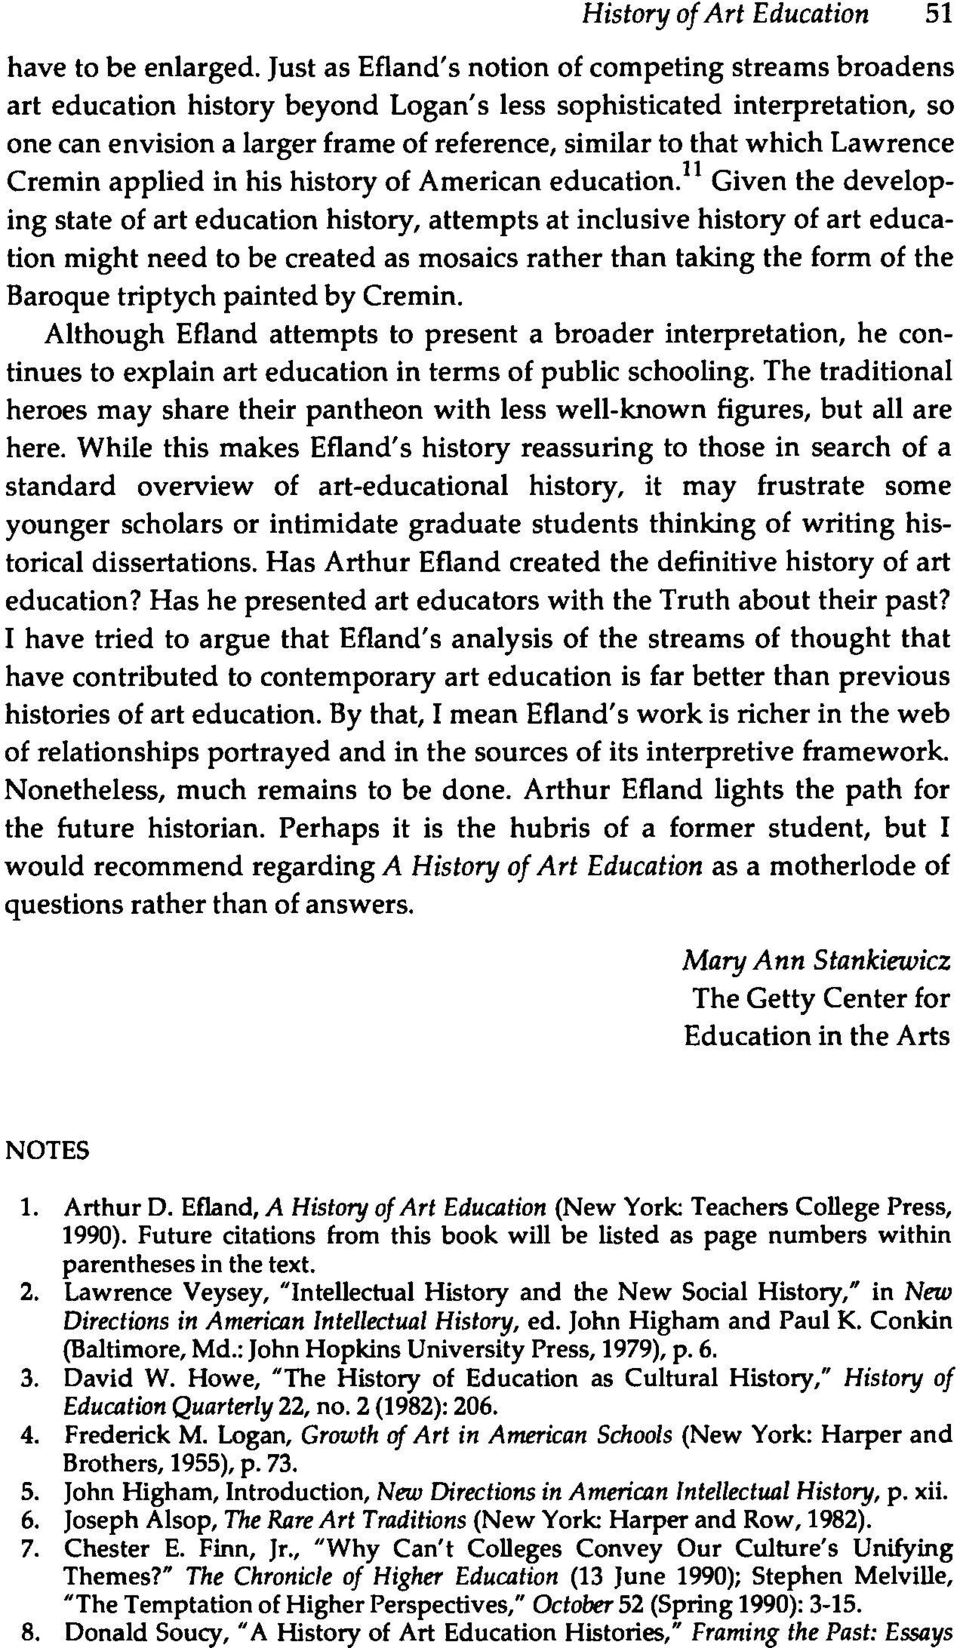 framing the past essays on art education Framing the past: essays on art education: donald soucy, ann stankiewicz: 9780937652527: books - amazonca.